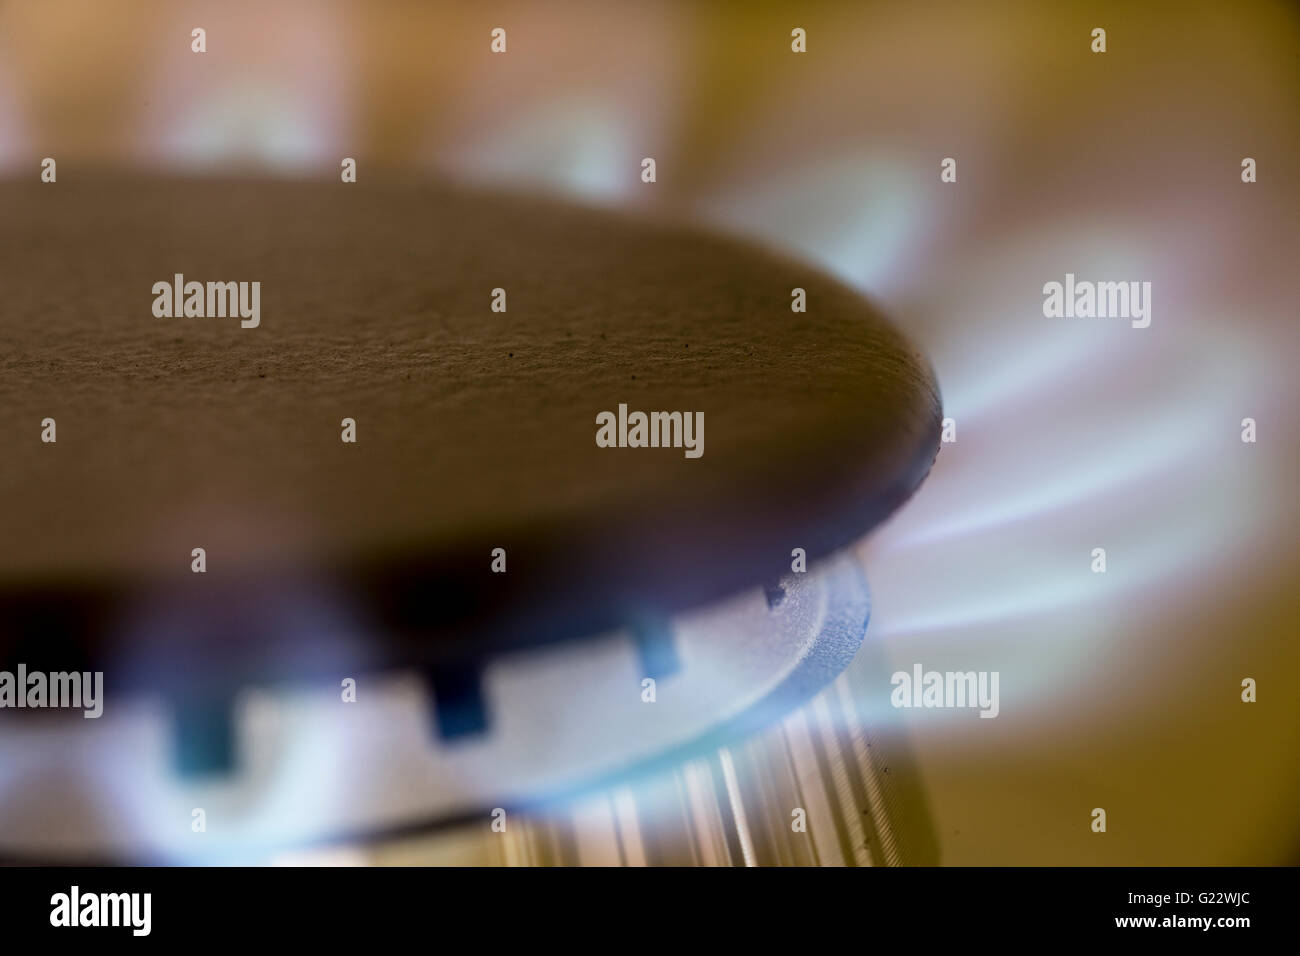 Close up of gas flame on gas hob - Stock Image